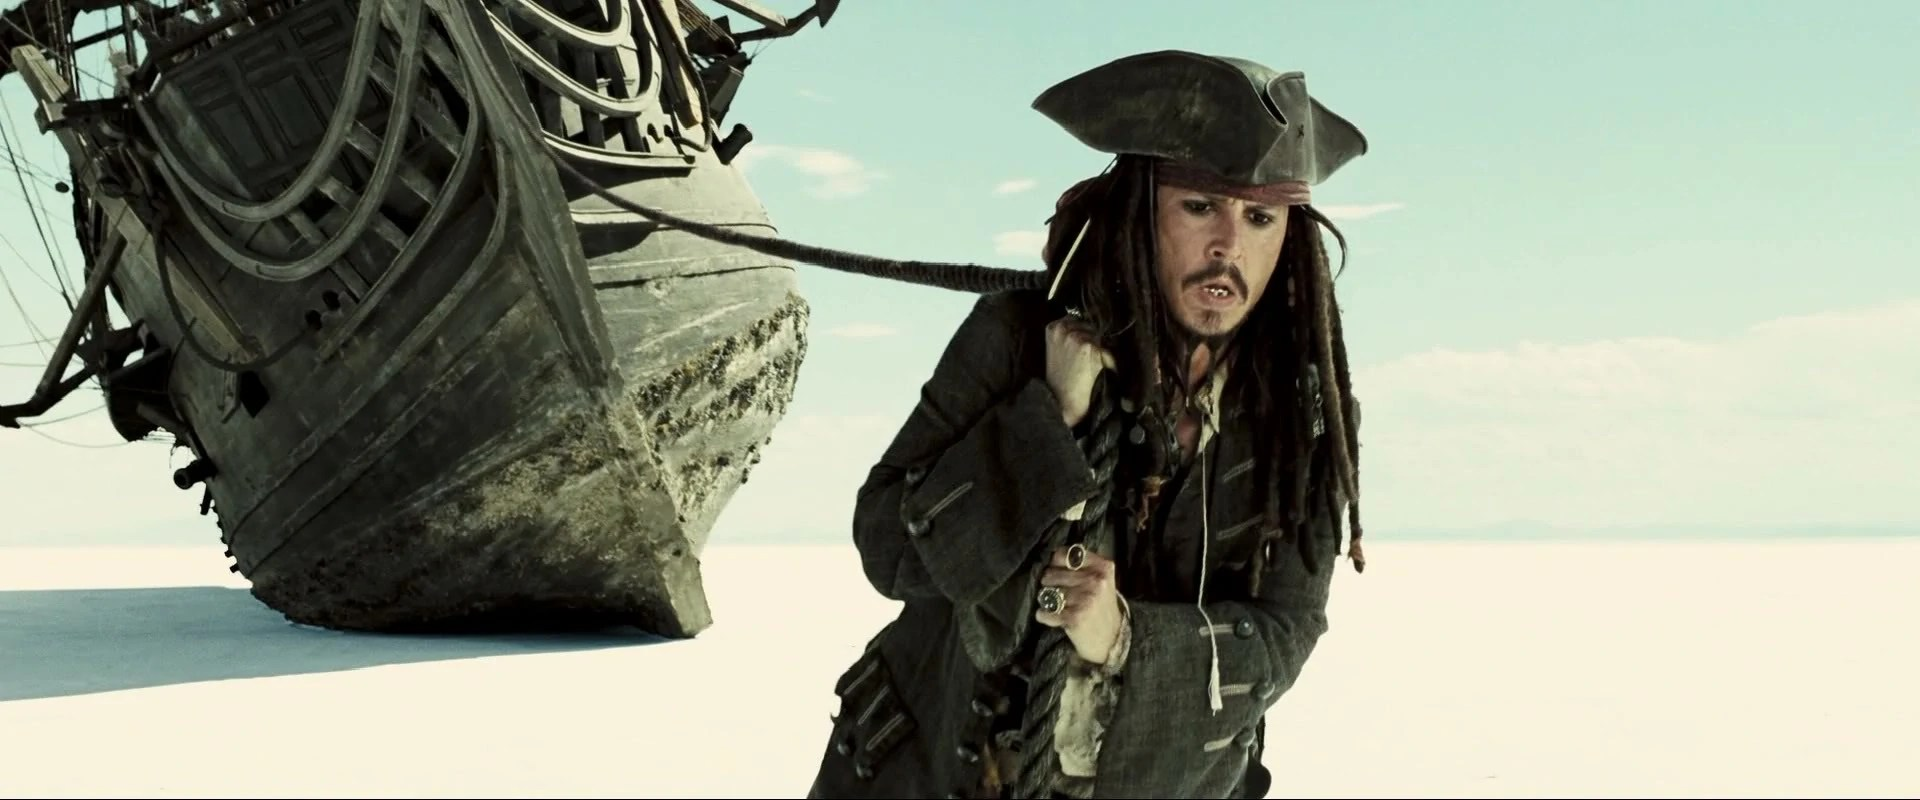 Jack Sparrow Davy Jones Locker